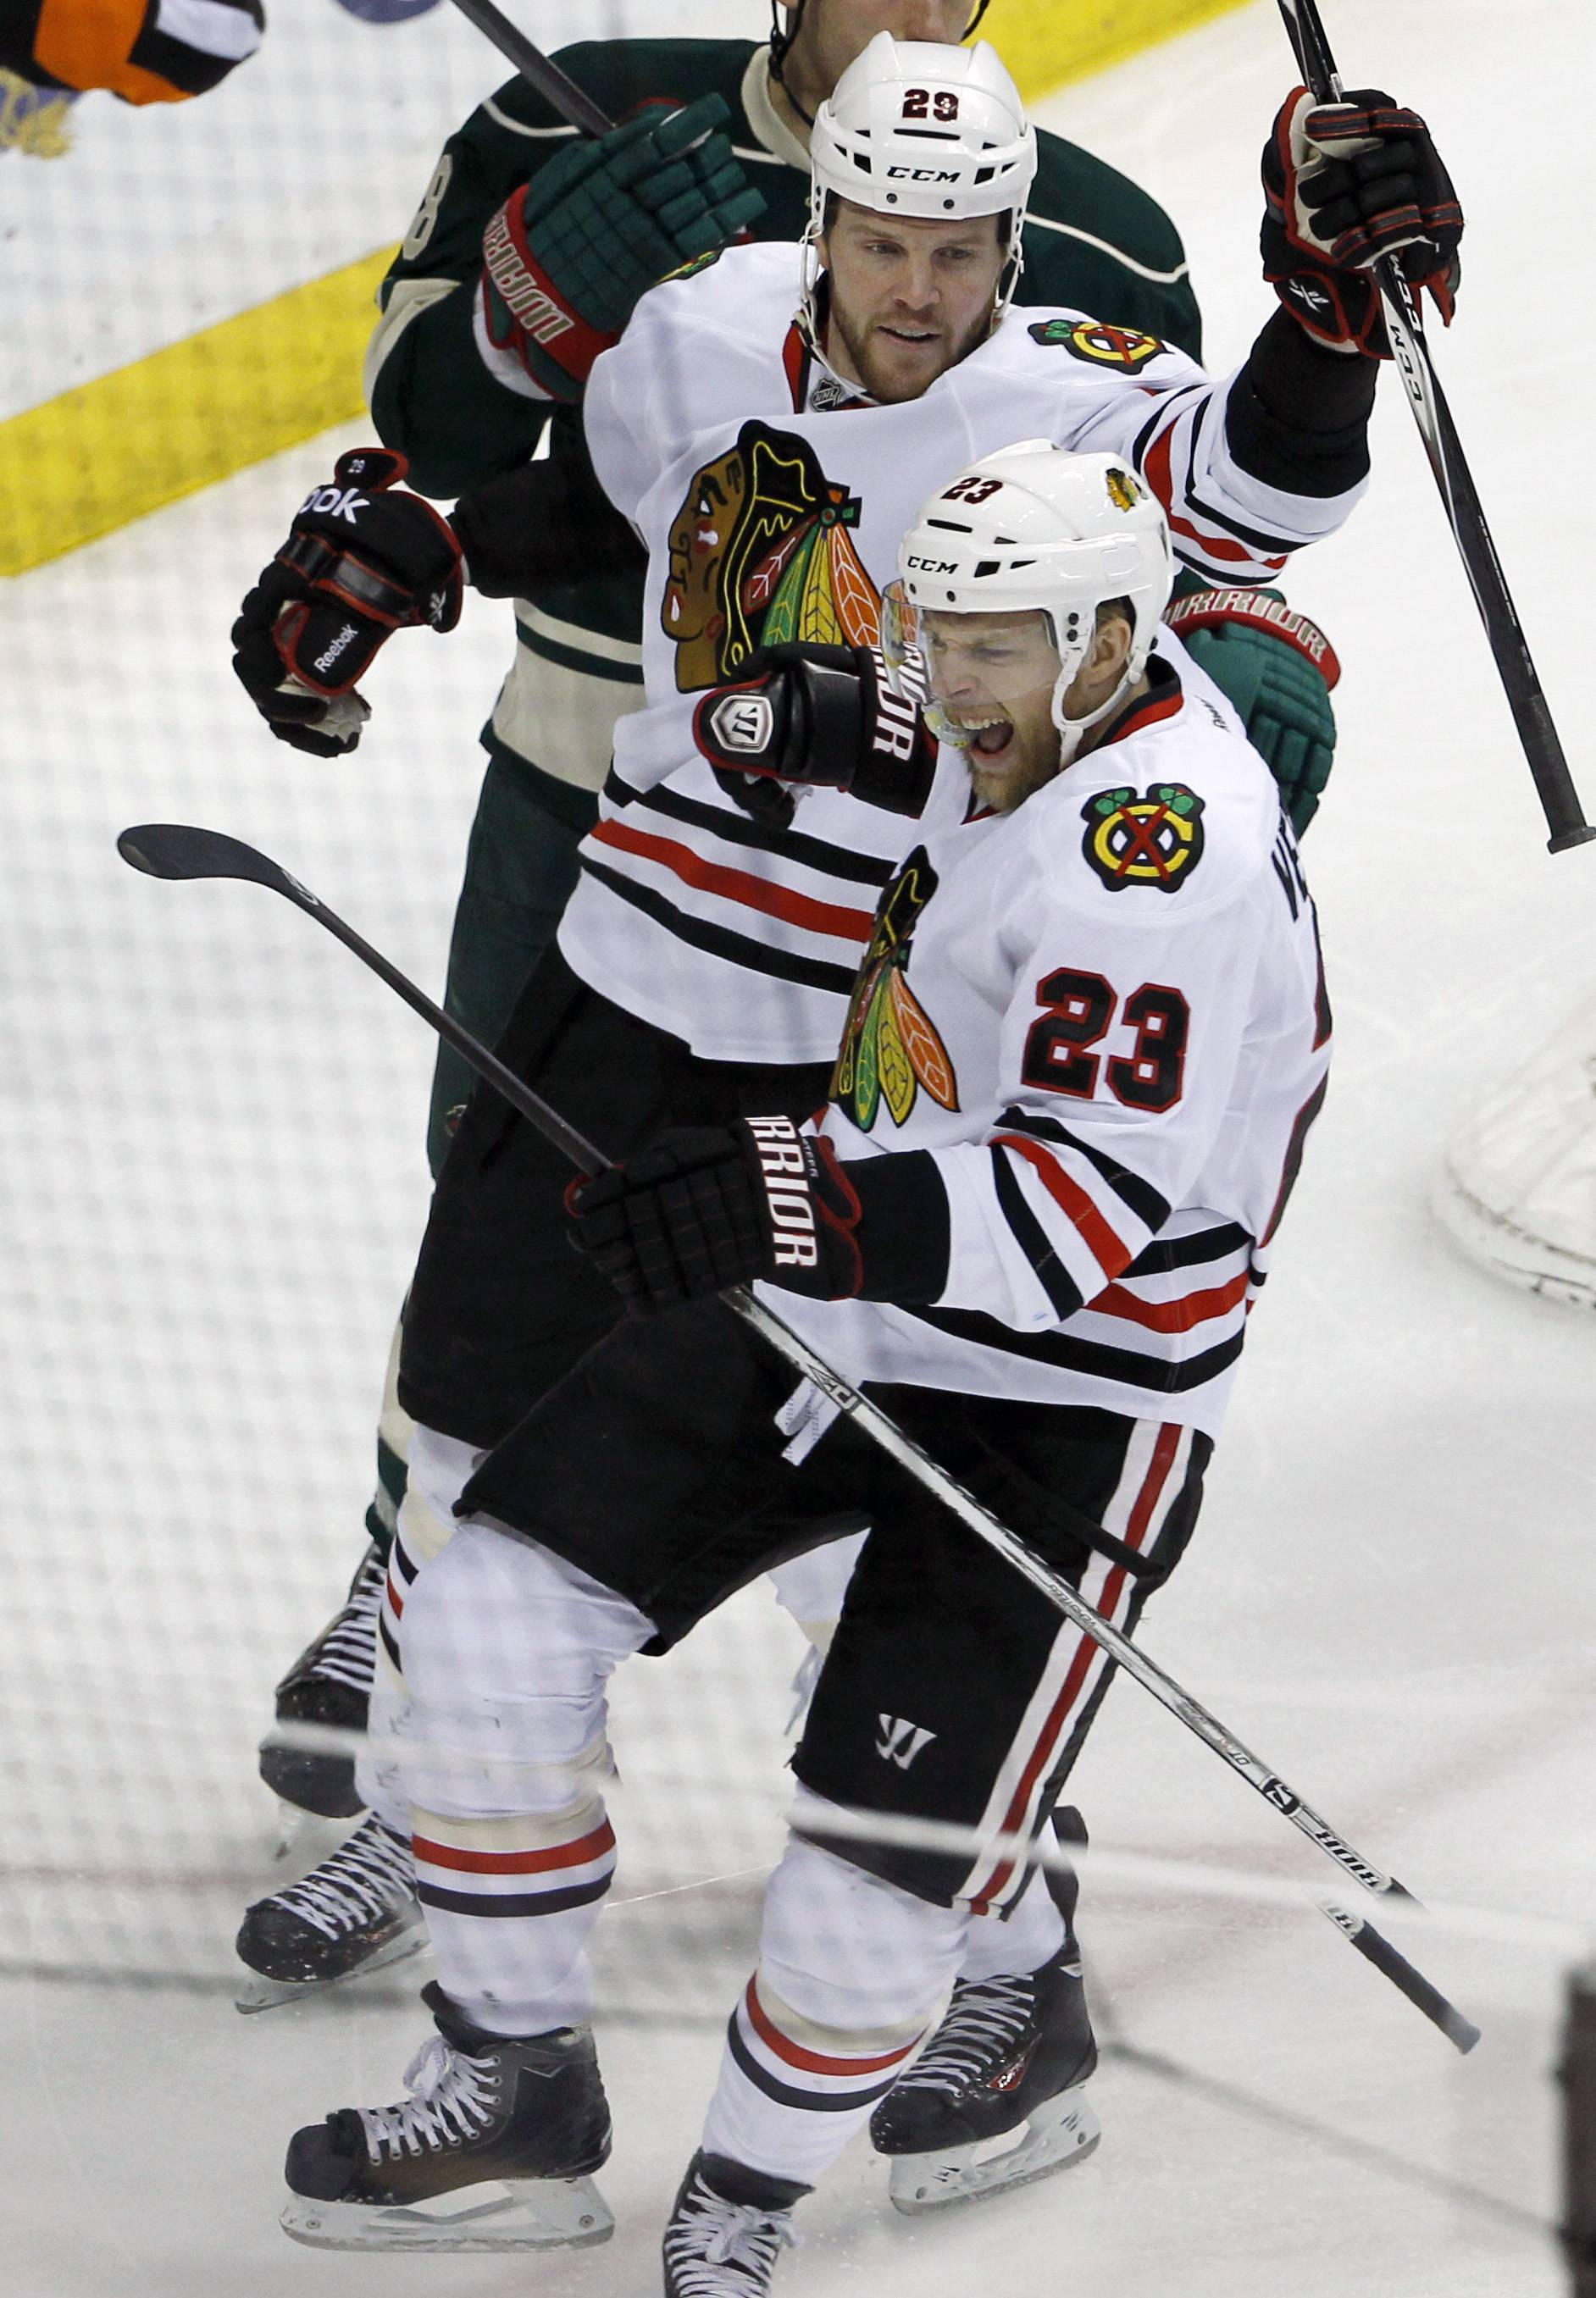 Blackhawks right wing Kris Versteeg (23) reacts in front of left wing Brandon Saad (20) after scoring on Minnesota Wild goalie Ilya Bryzgalov during the first period of Game 6 in St. Paul, Minn., Tuesday.